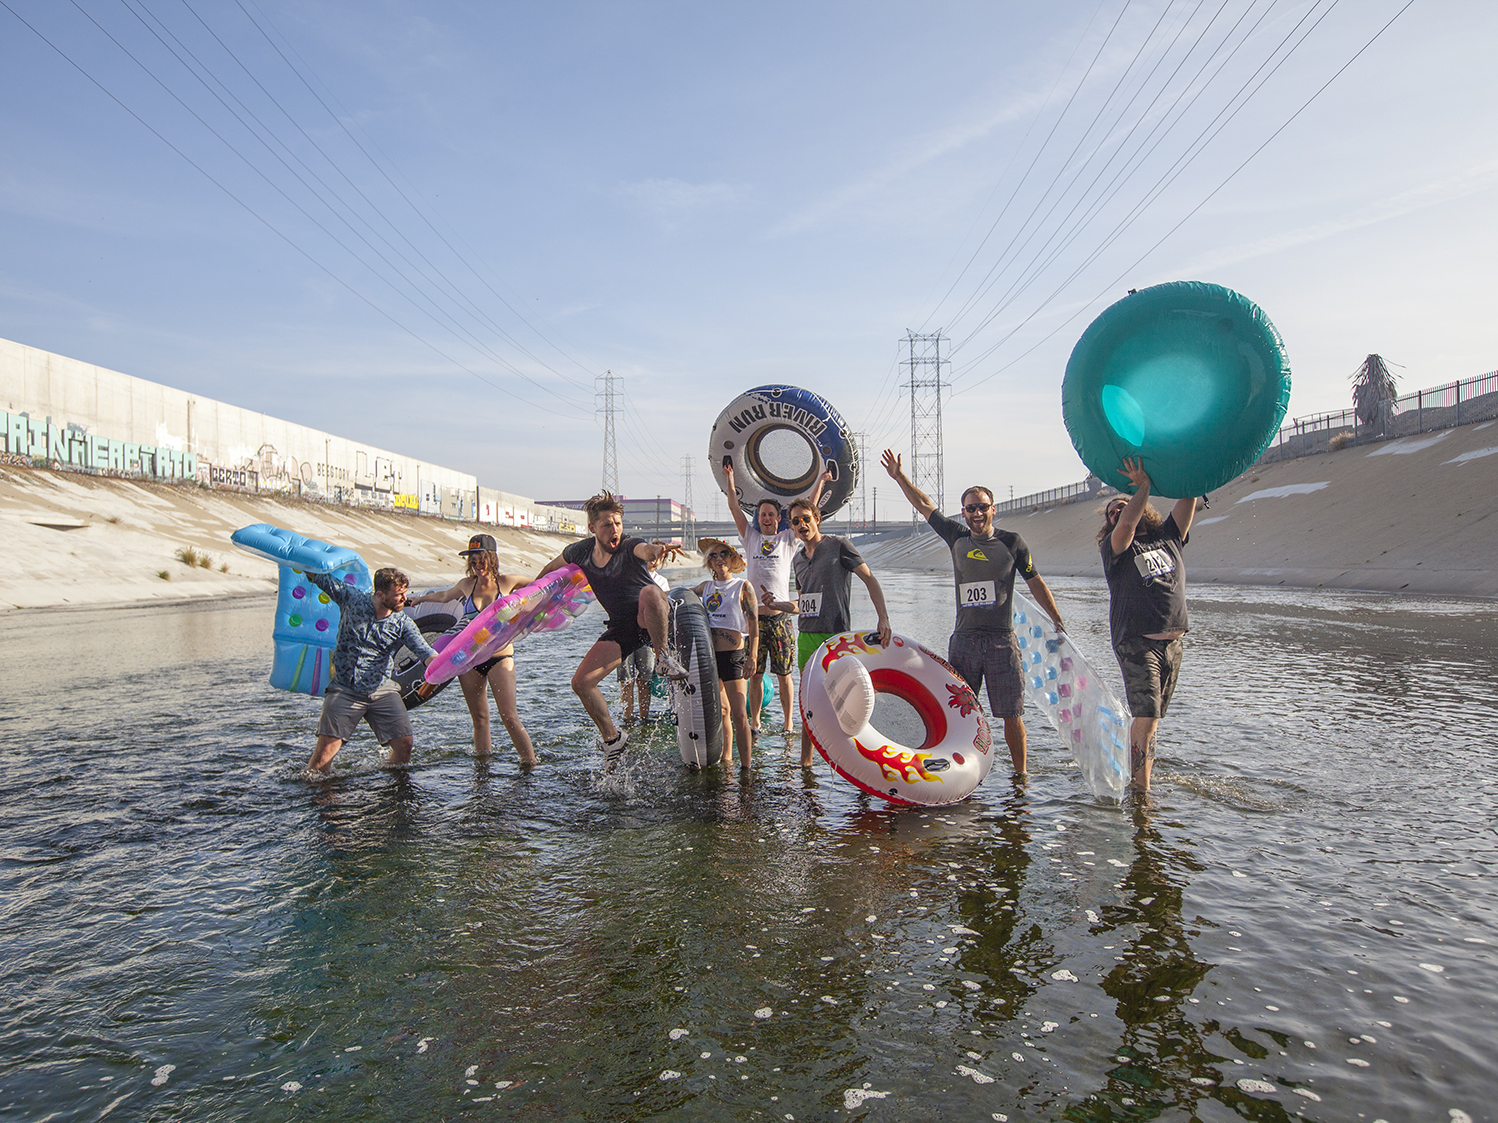 Surprise! The L.A.zy River inner tube race actually happened, and we've got photos